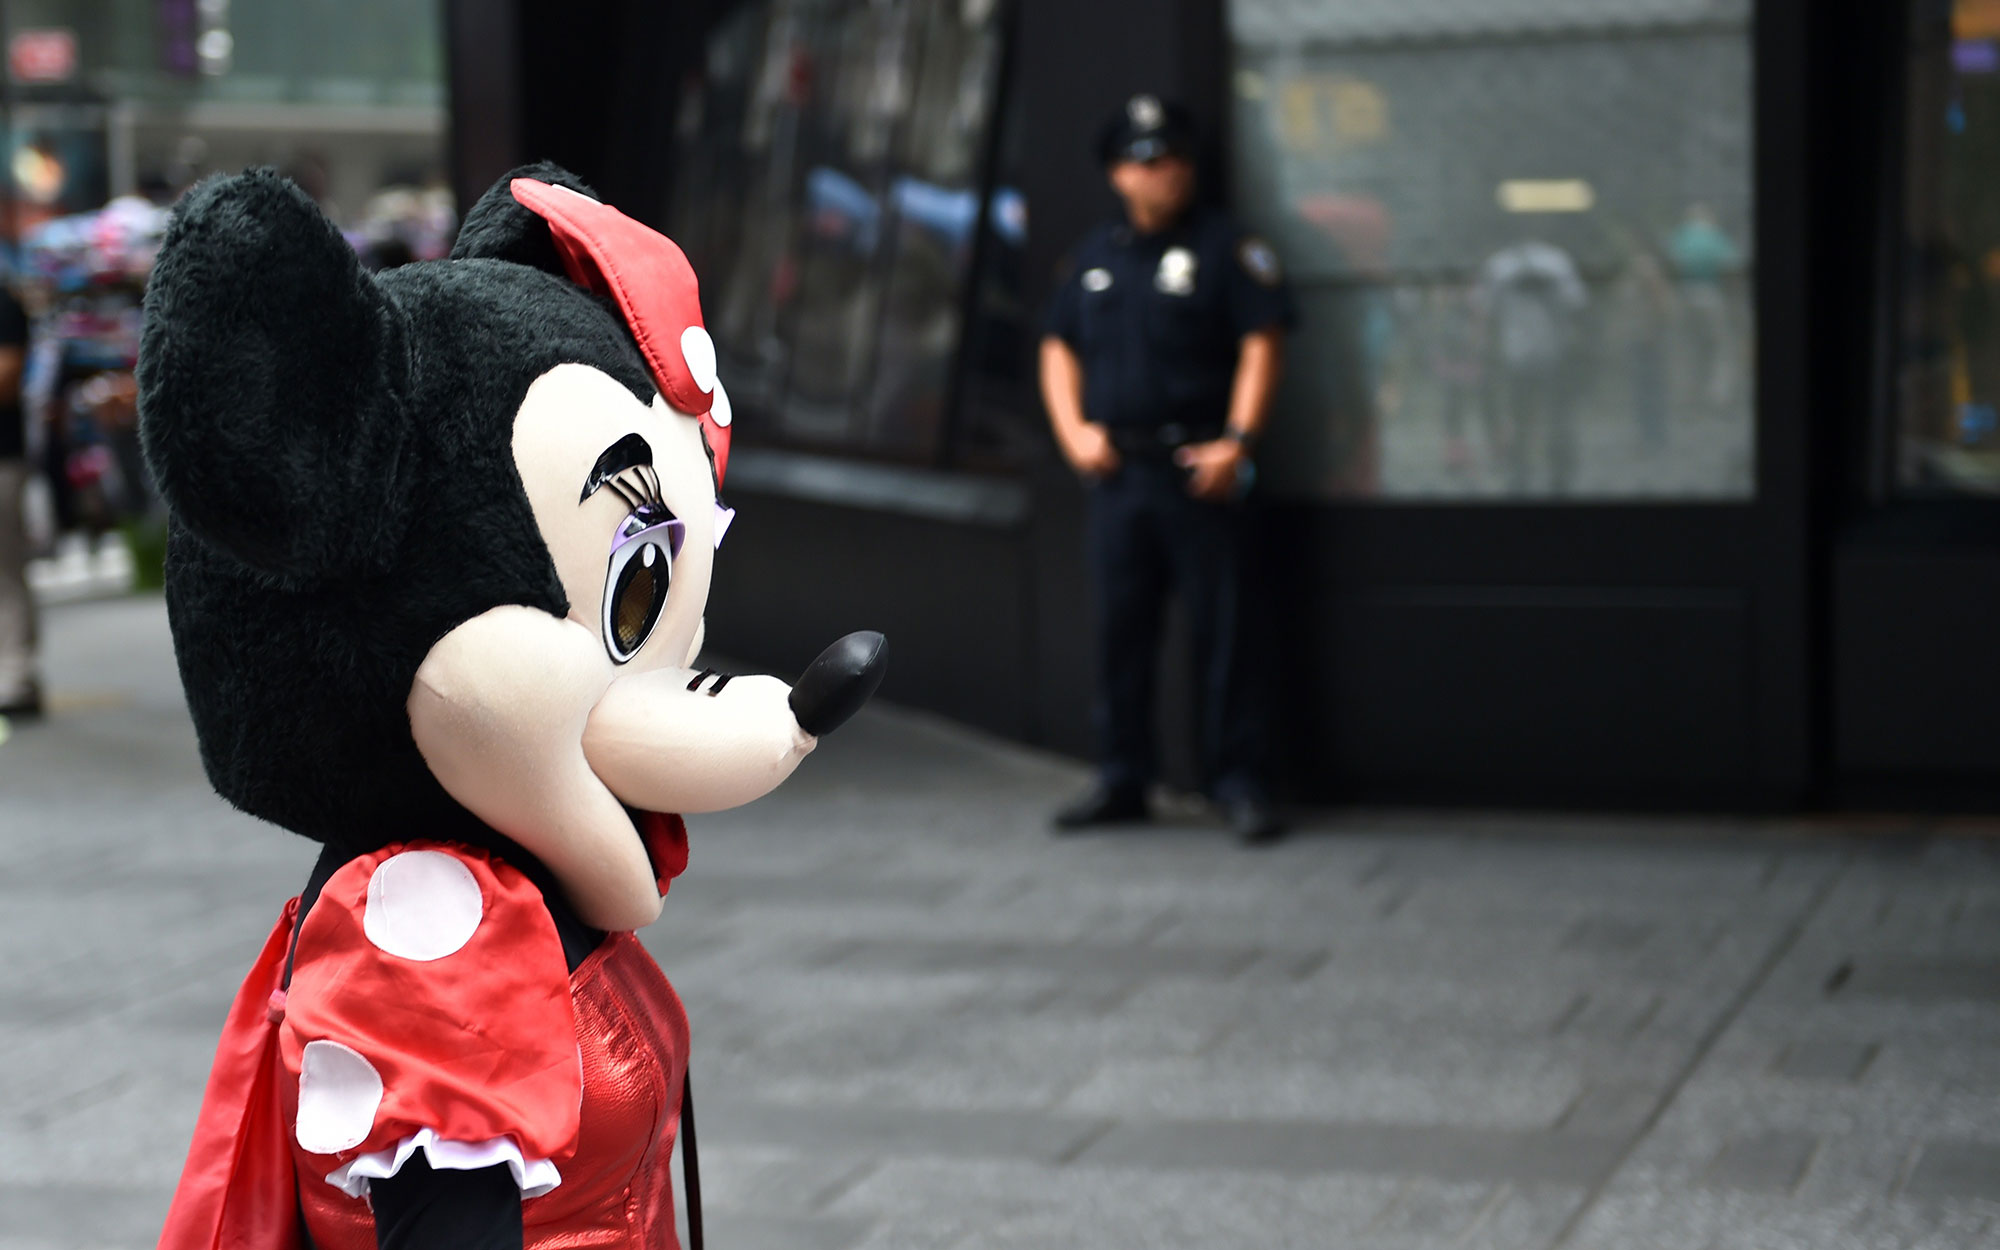 Minnie Mouse Arrested in Times Square For Harassing Tourists